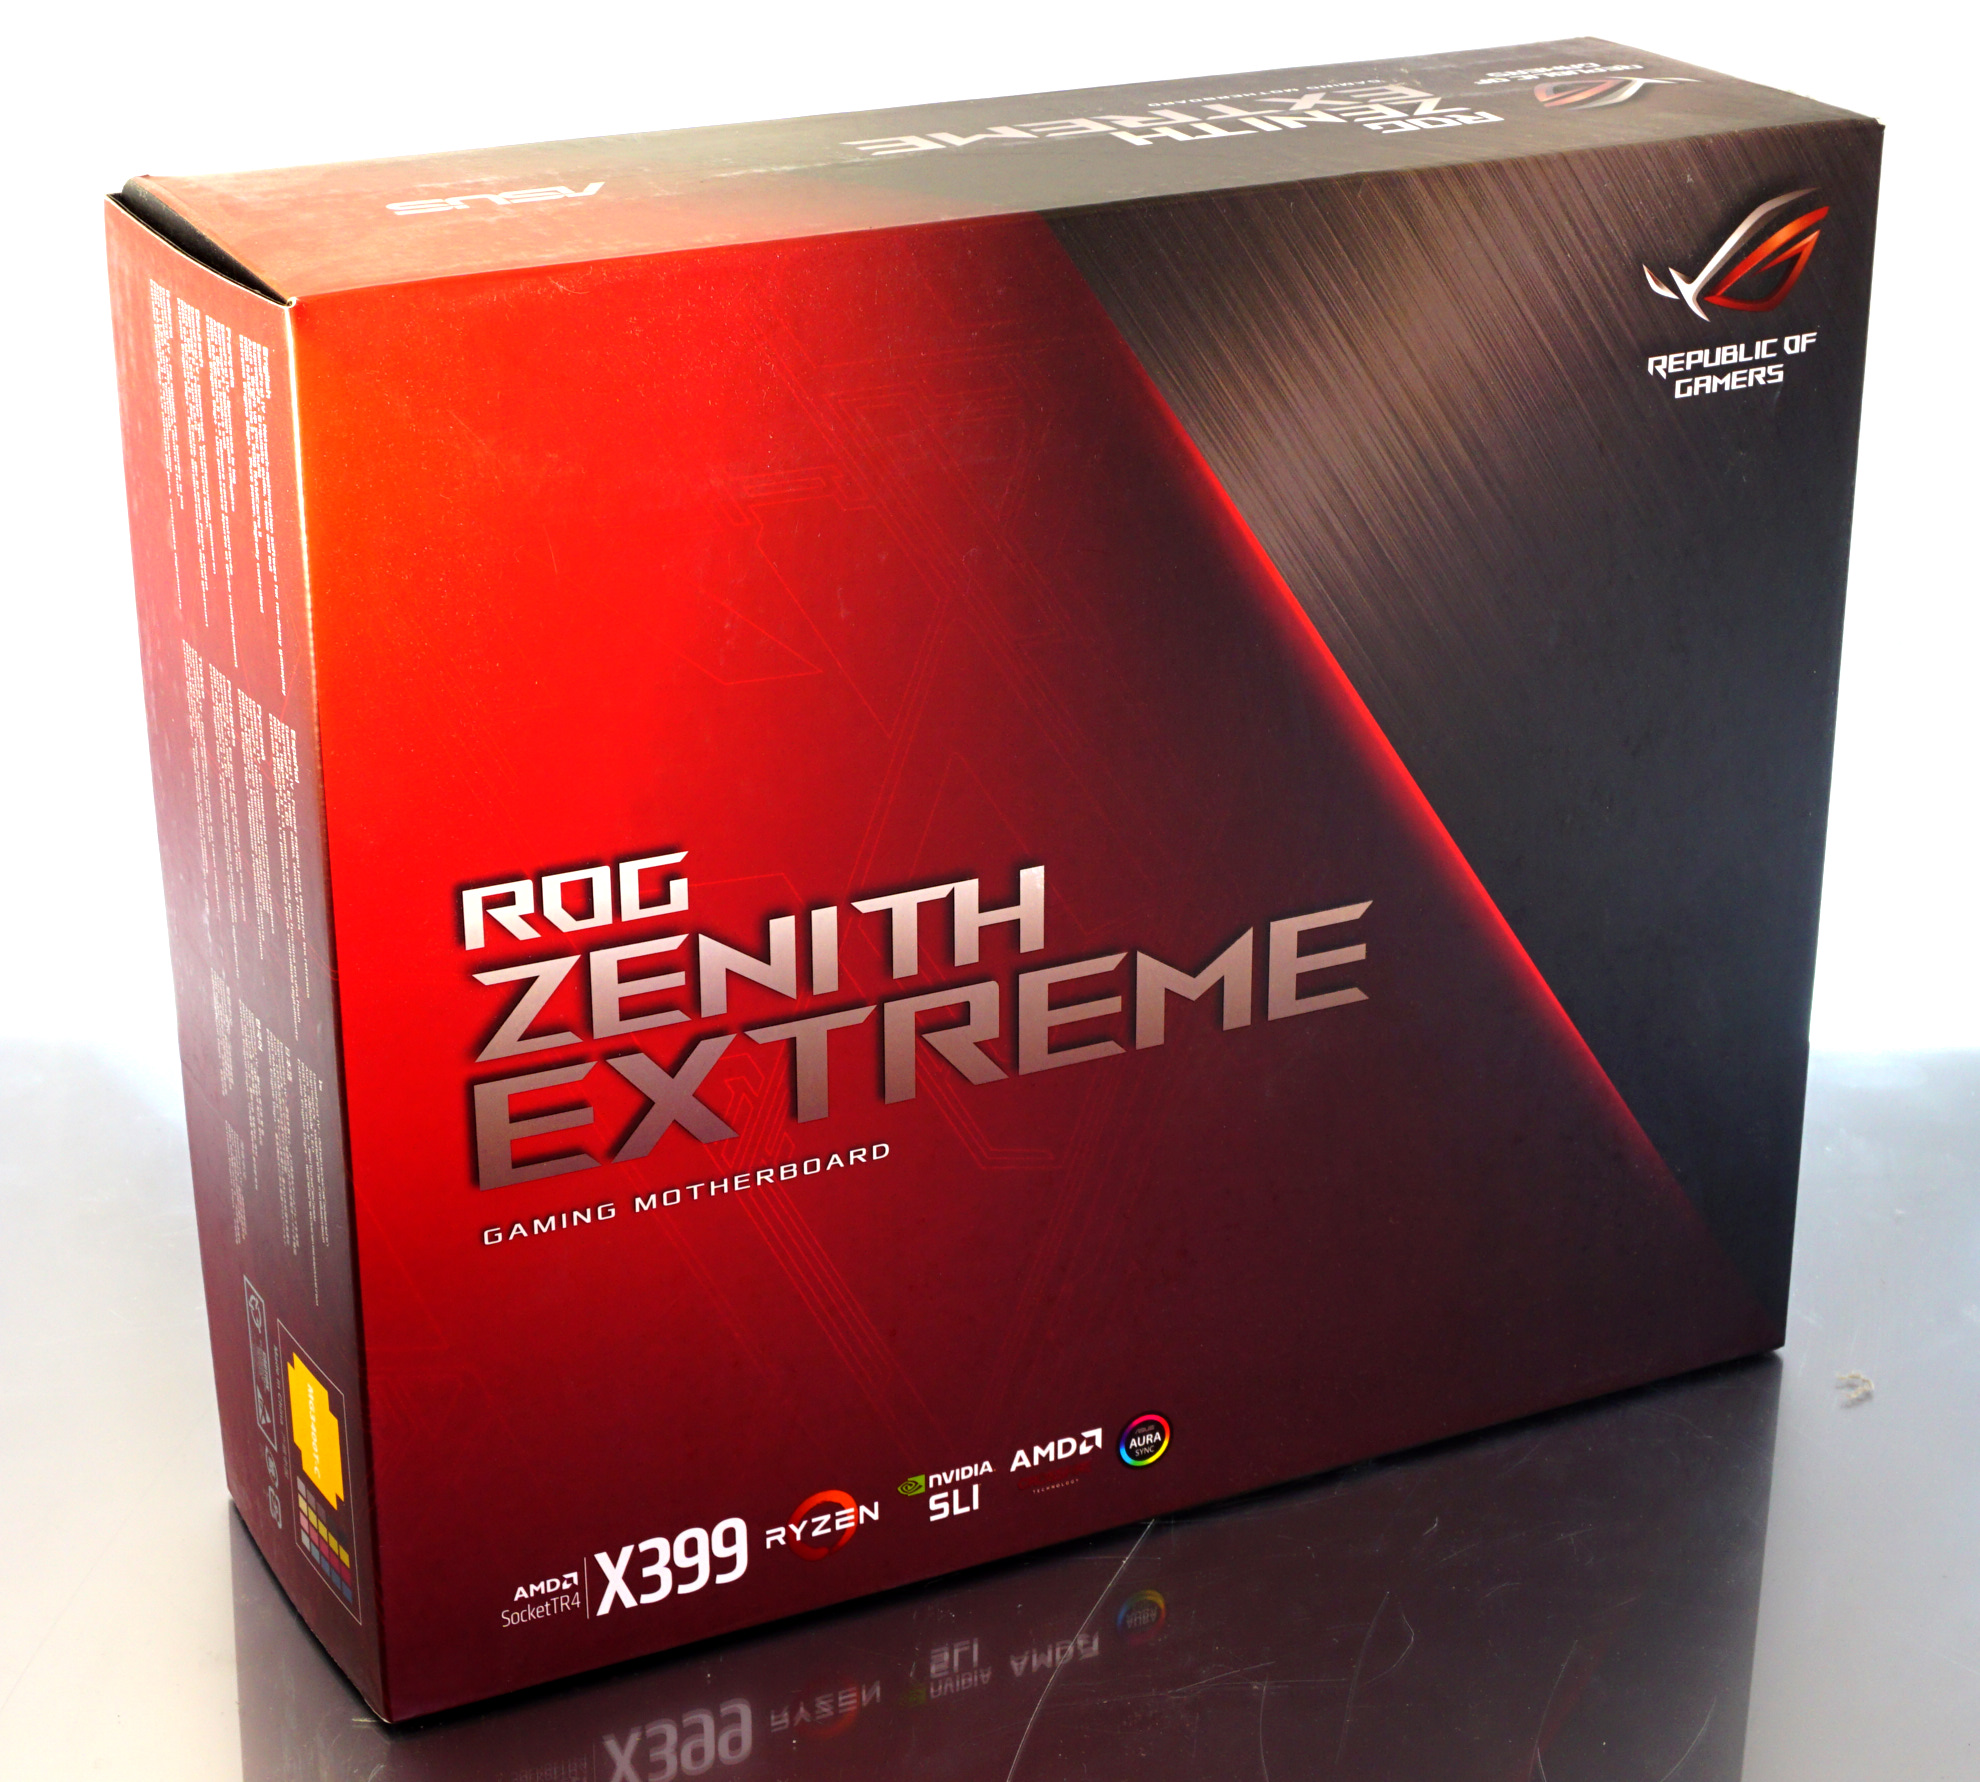 The ASUS X399 ROG Zenith Extreme Motherboard Review: Top